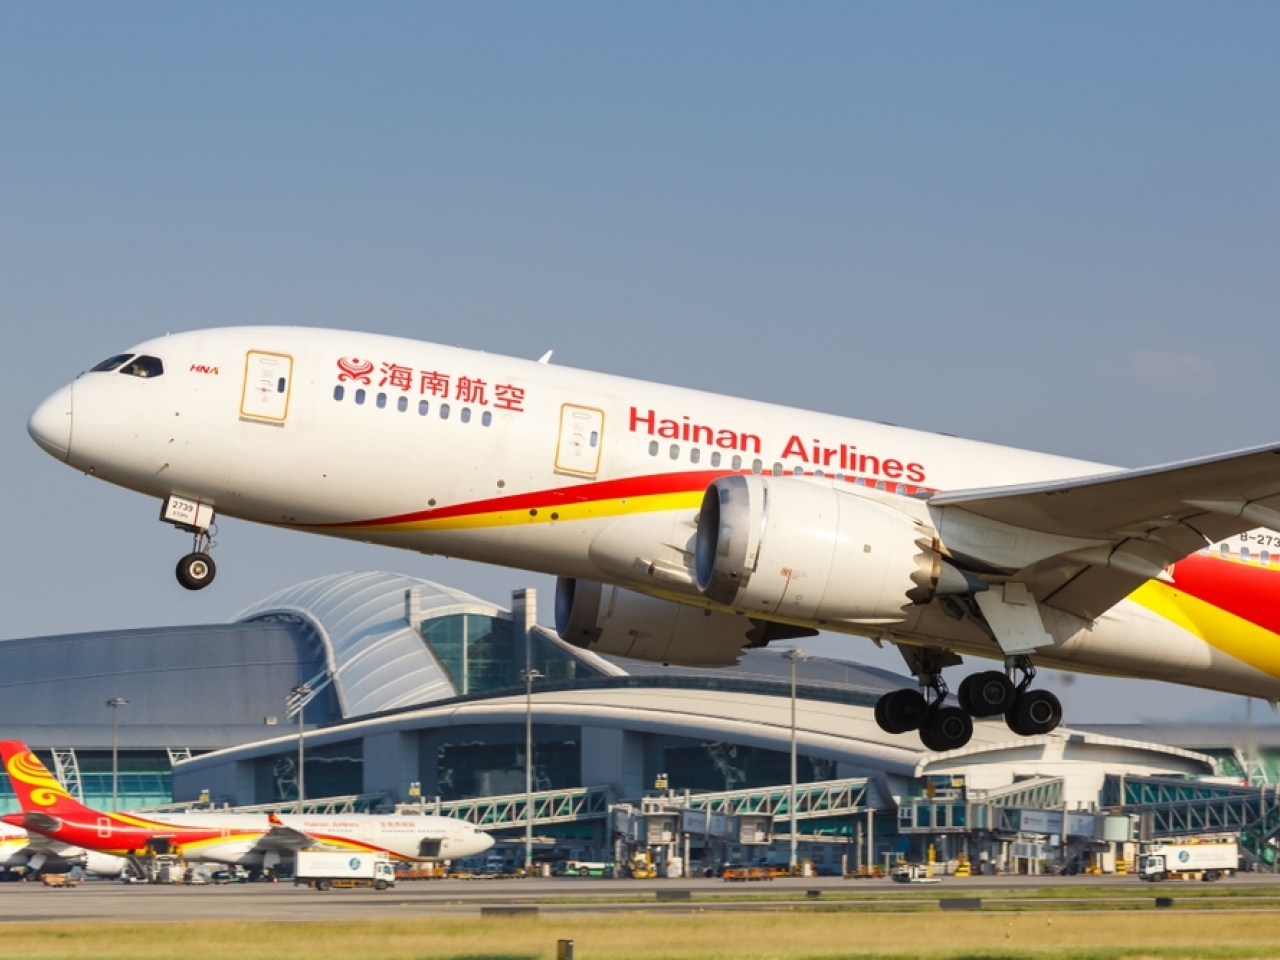 HNA's flagship business is Hainan Airlines. File image: Shutterstock